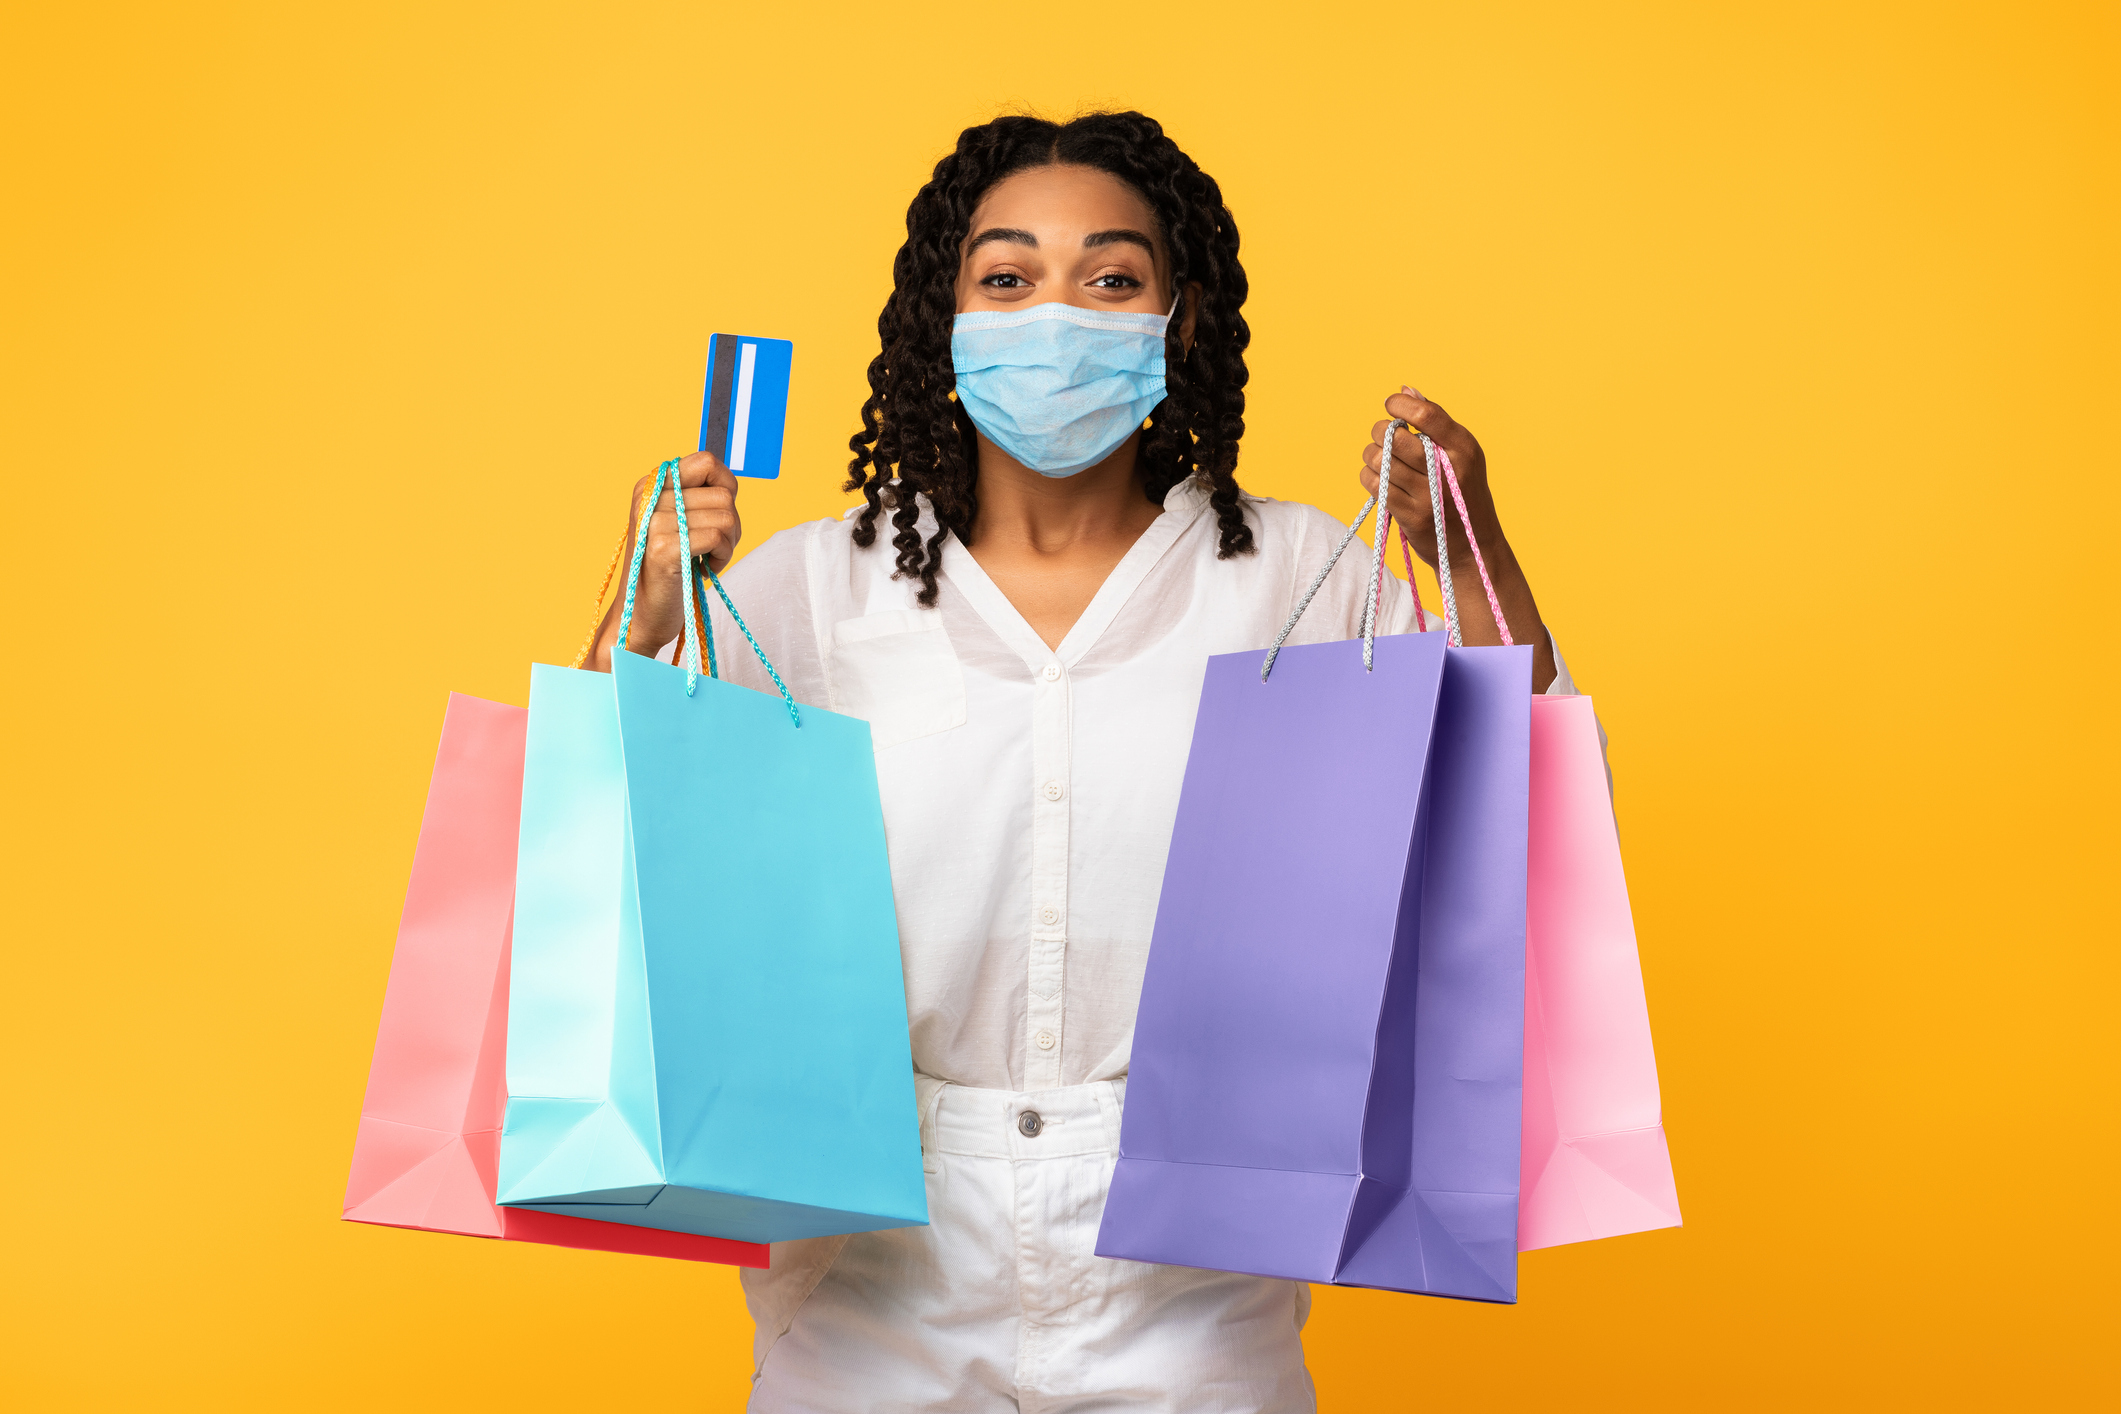 Shopping In Mask Holding Credit Card and Bags